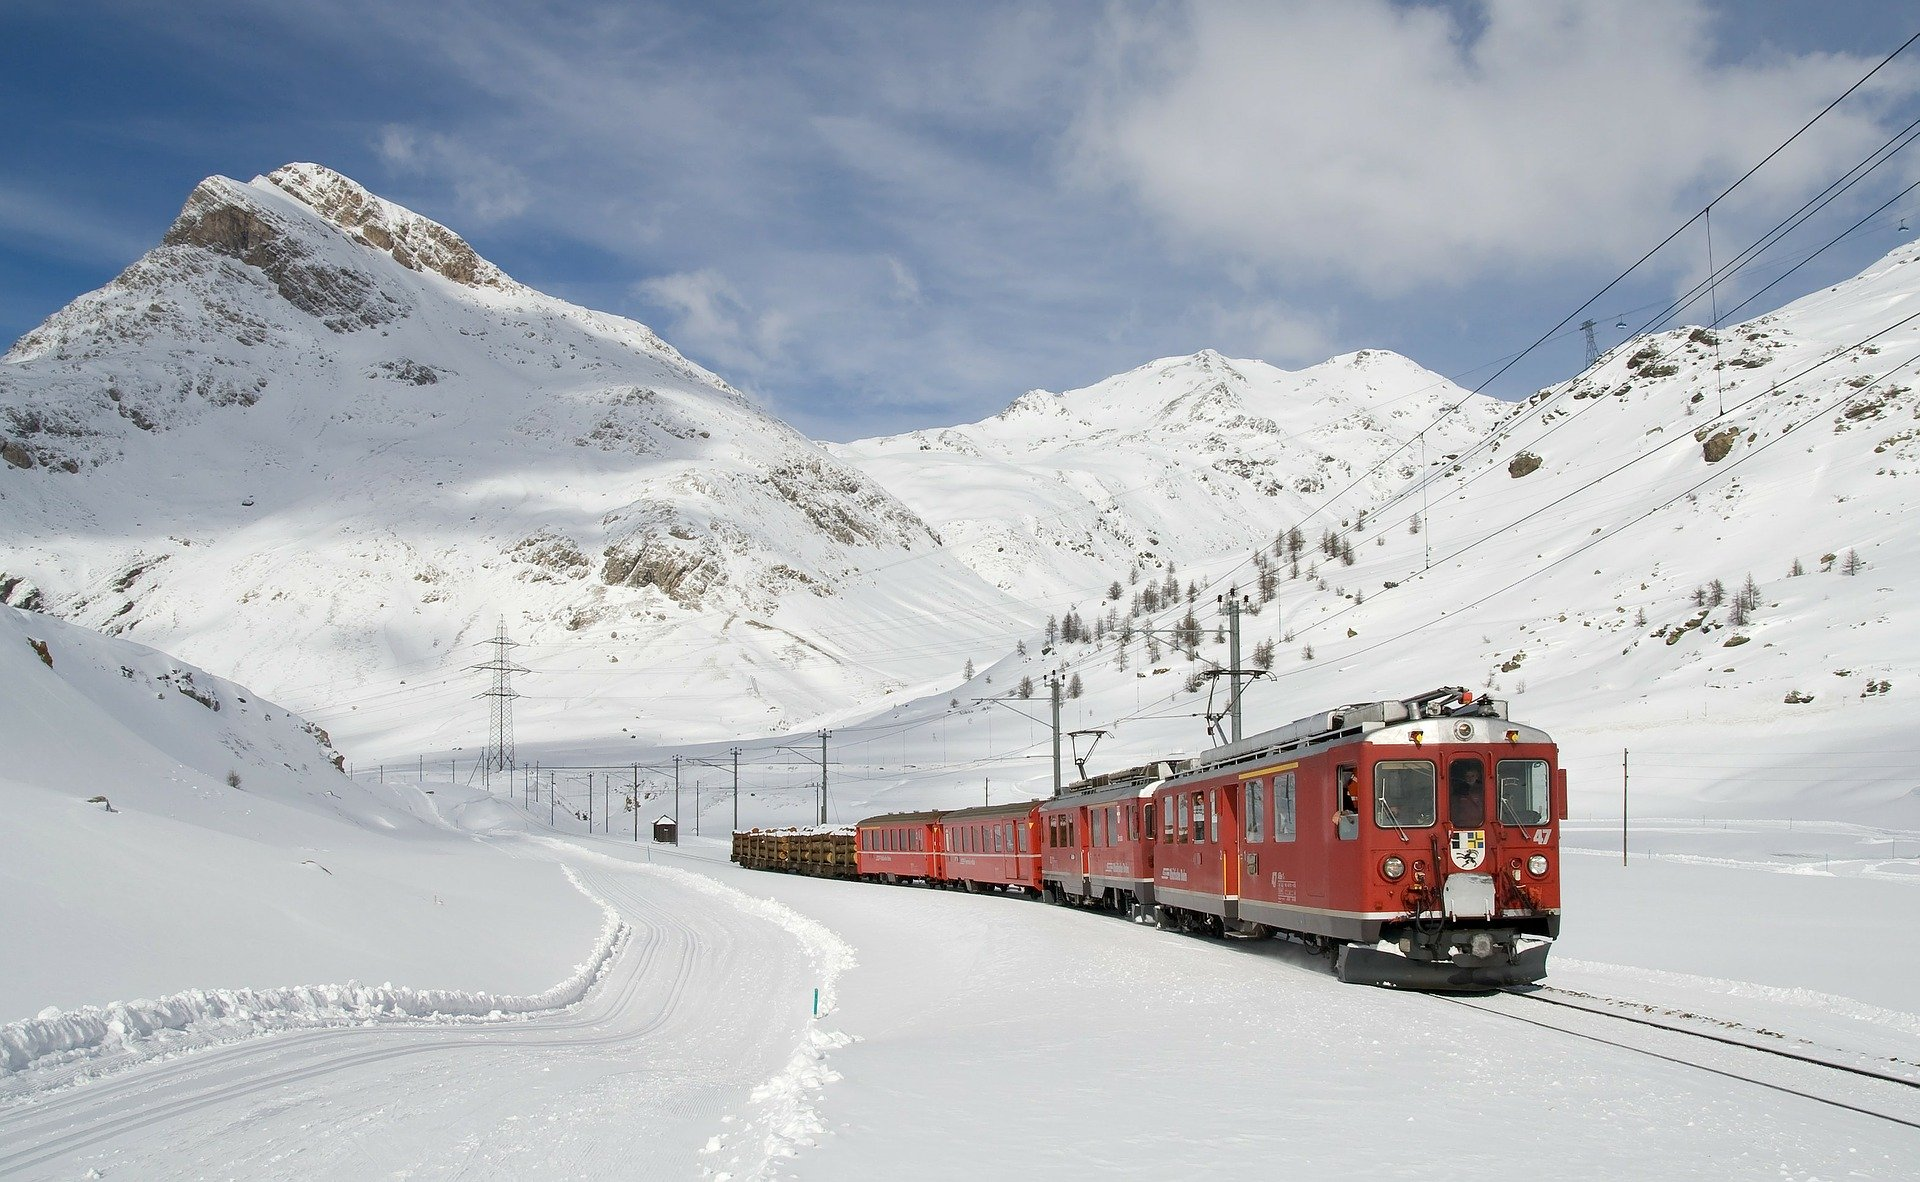 A train traveling in the mountains